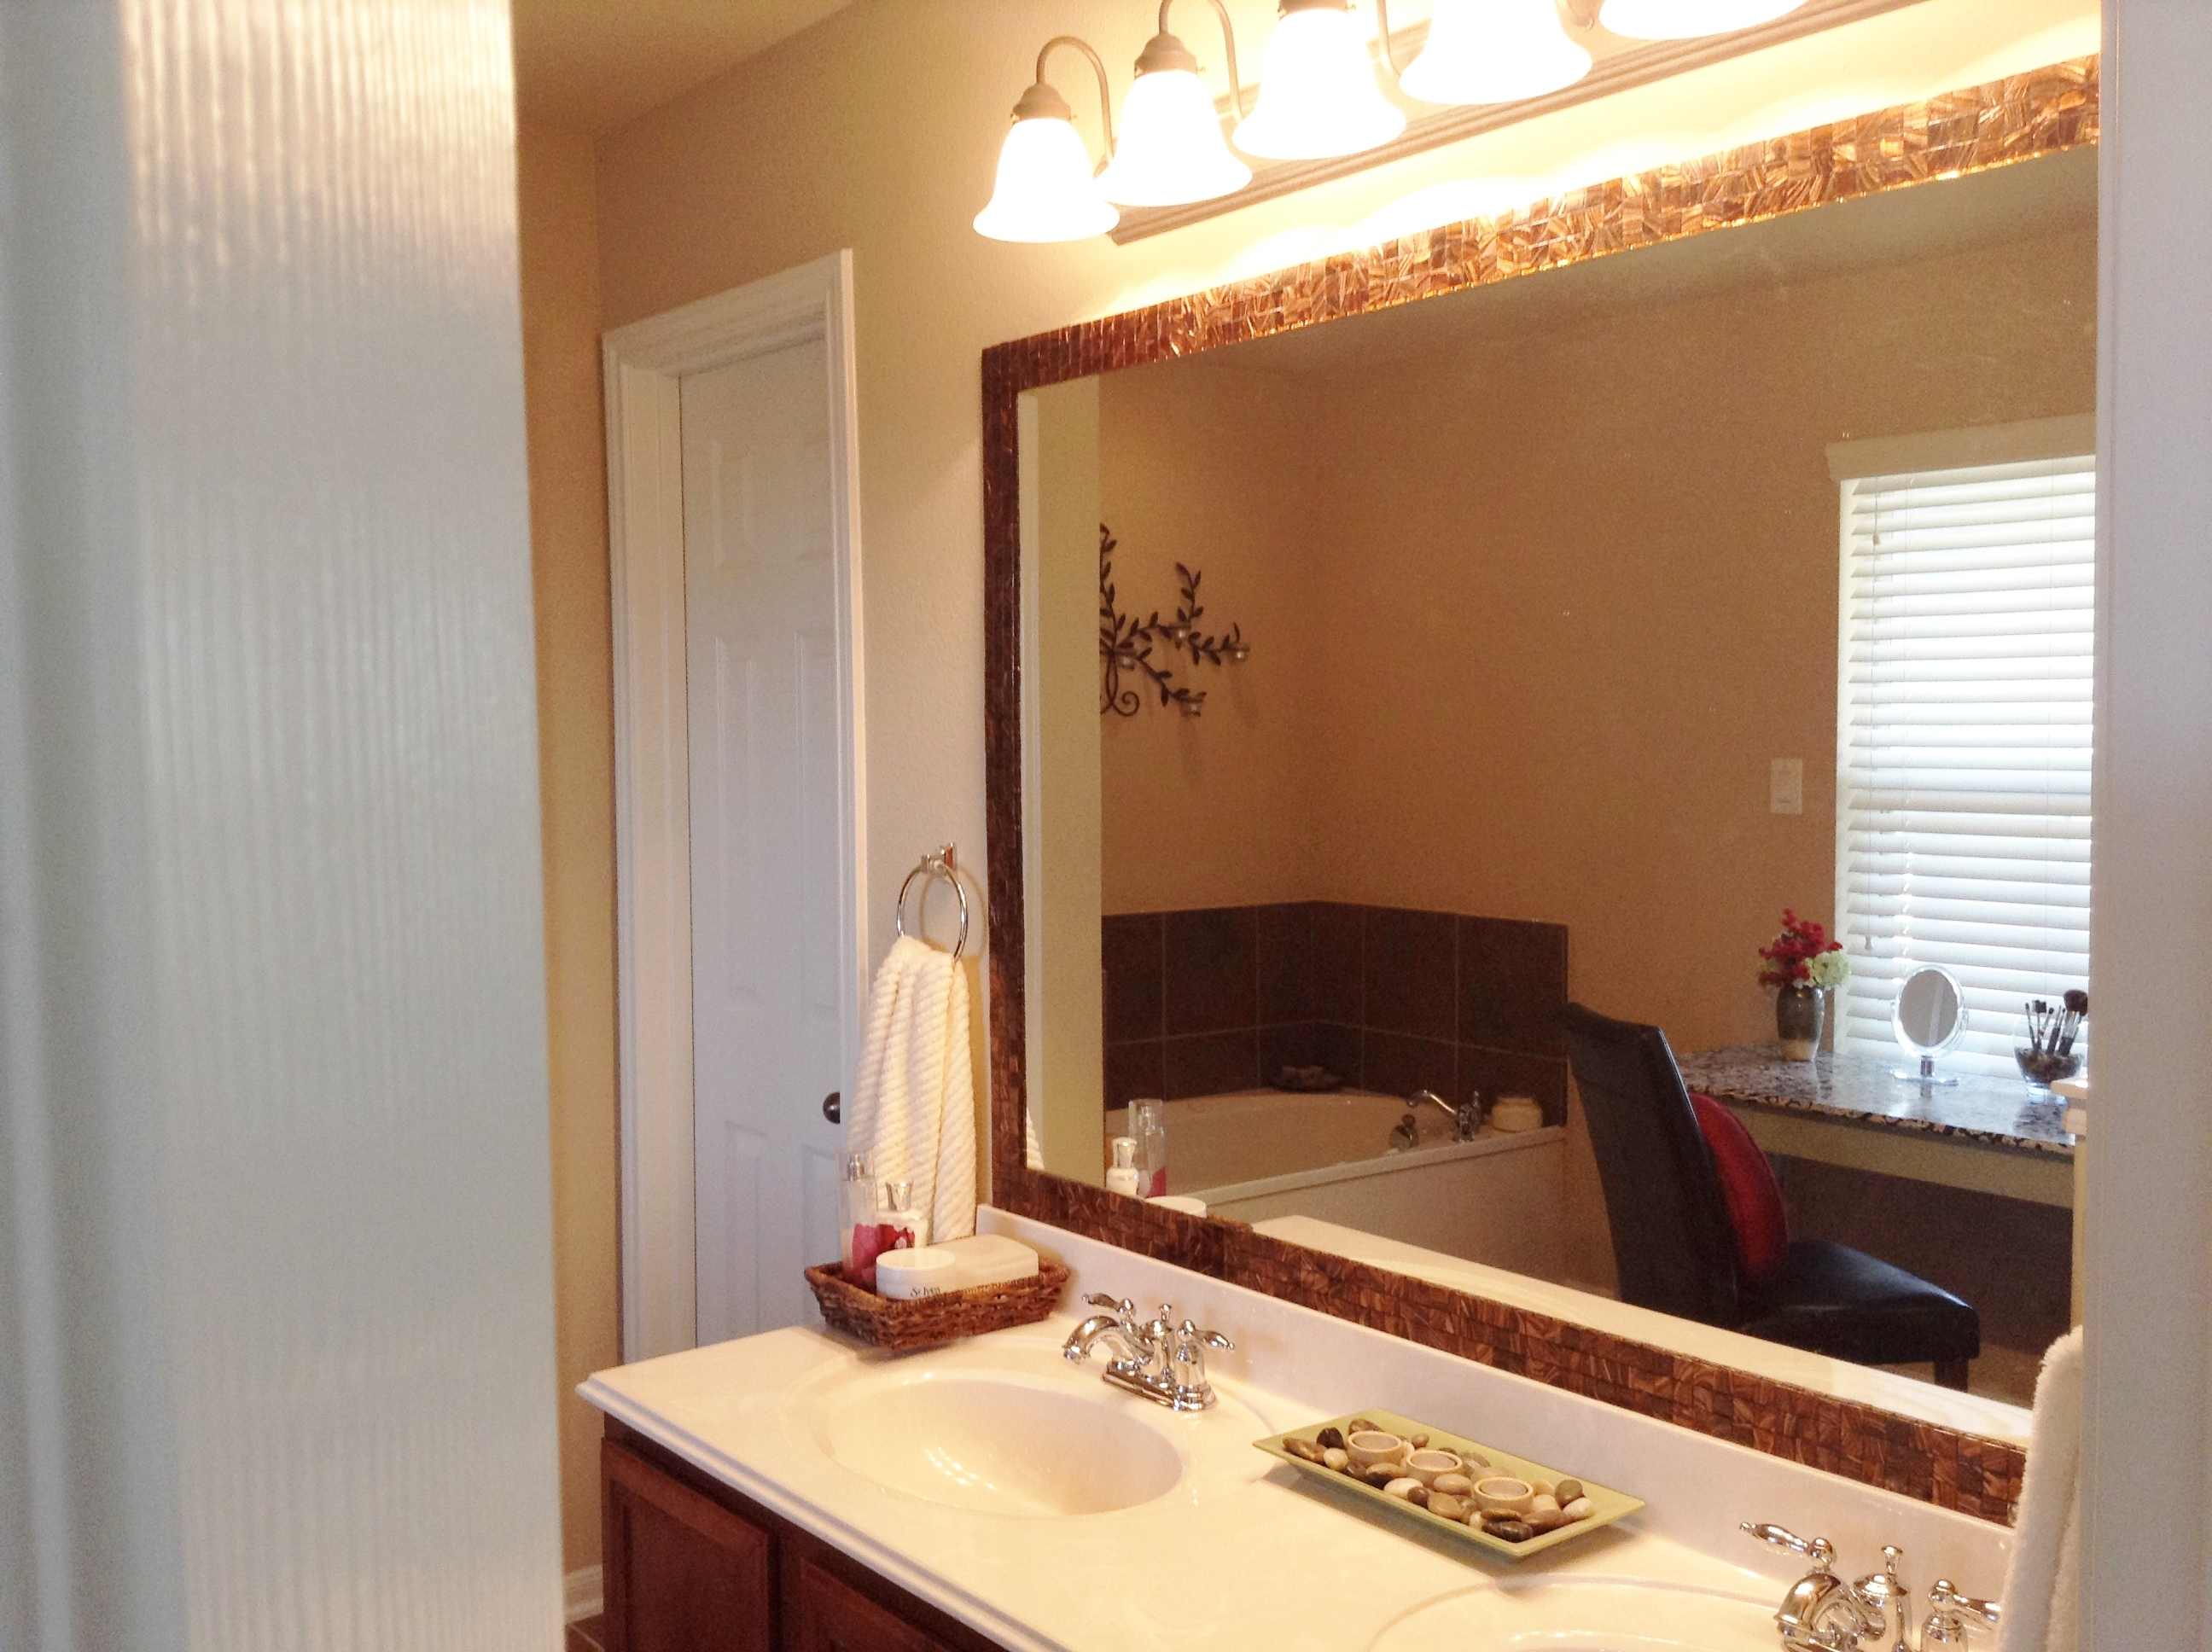 Bathroom Mirror Tile Frame